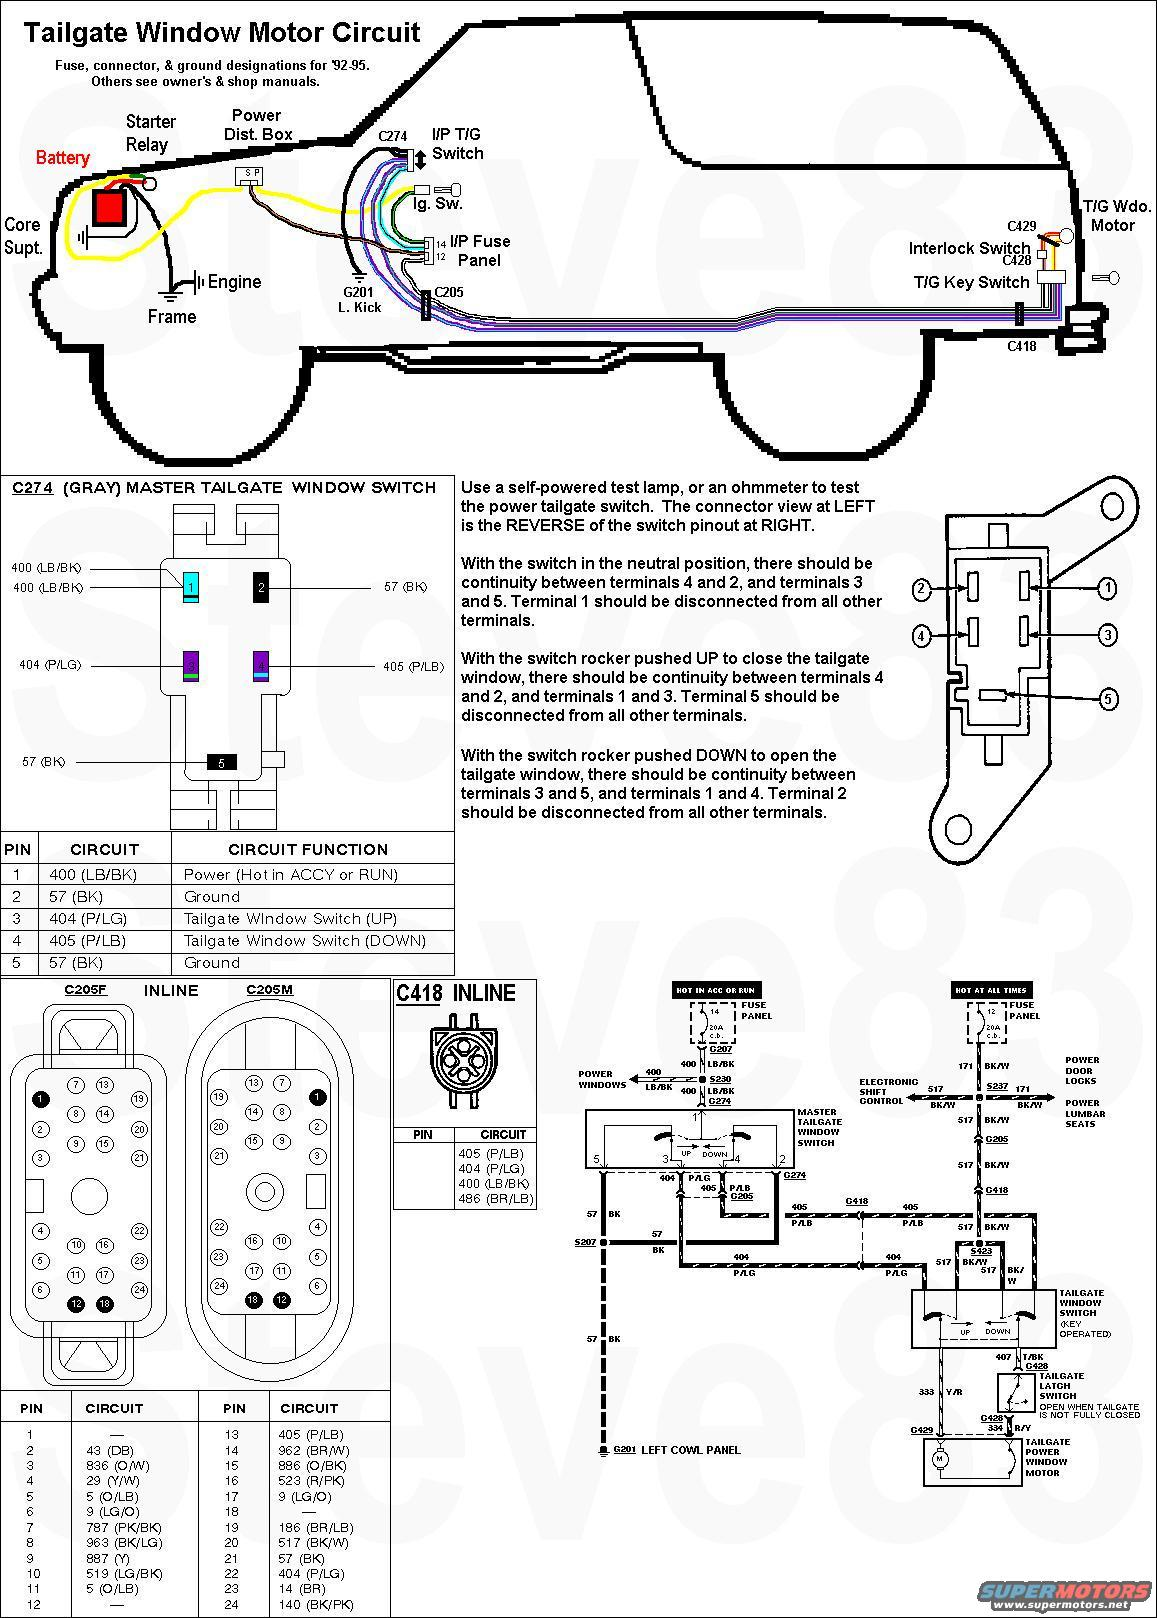 tgmotorwiring tailgate window lift key switch bypass? ford truck enthusiasts 1978 ford bronco wiring diagram at soozxer.org